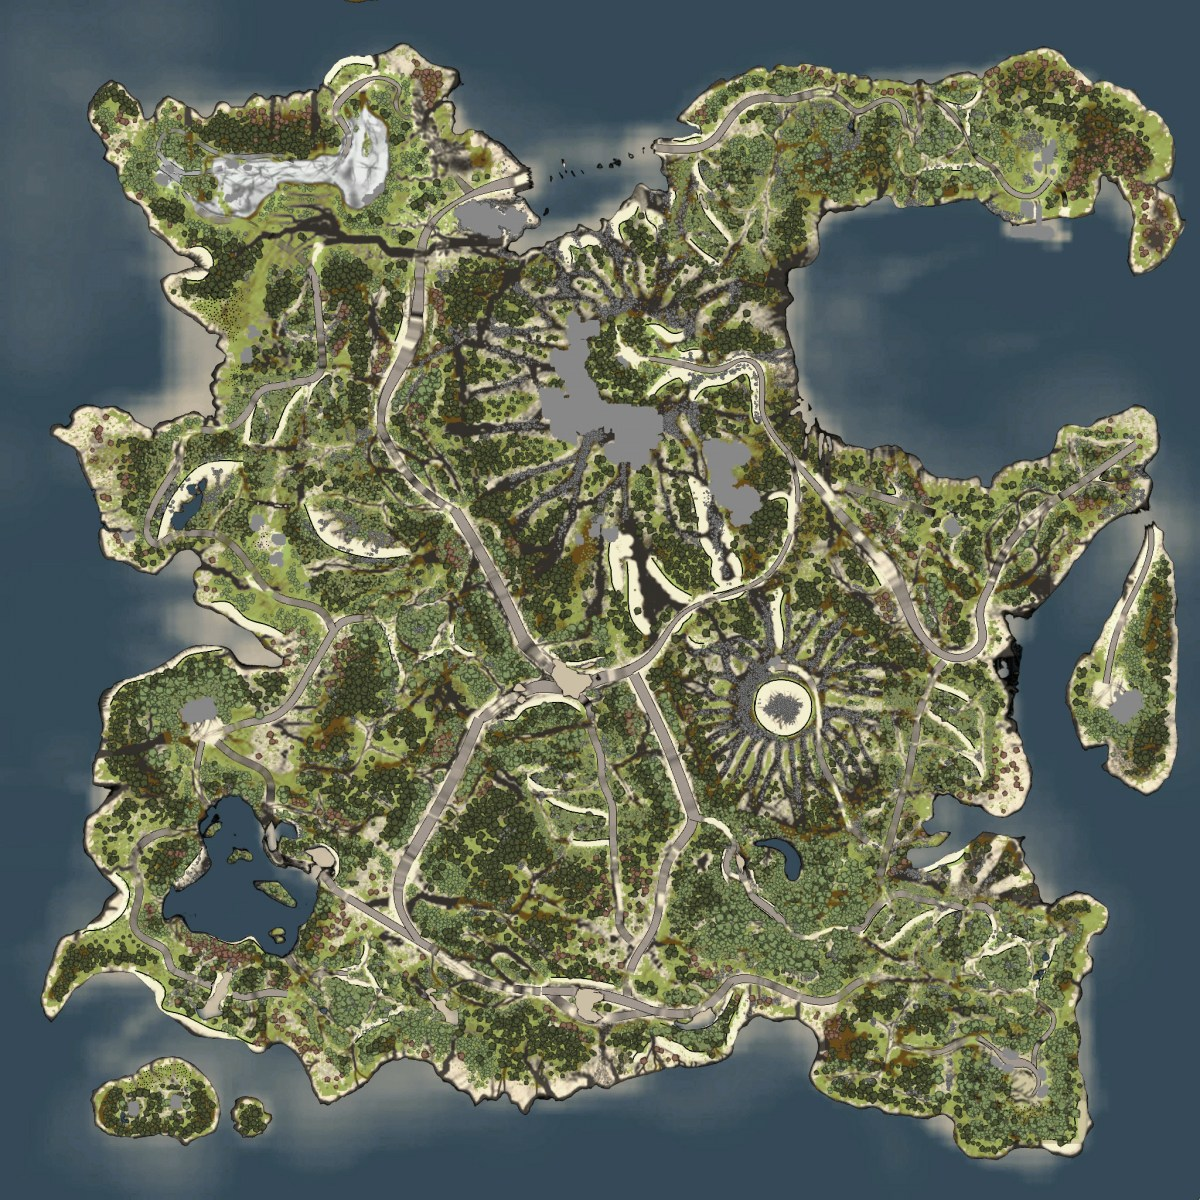 ST14 - High res maps